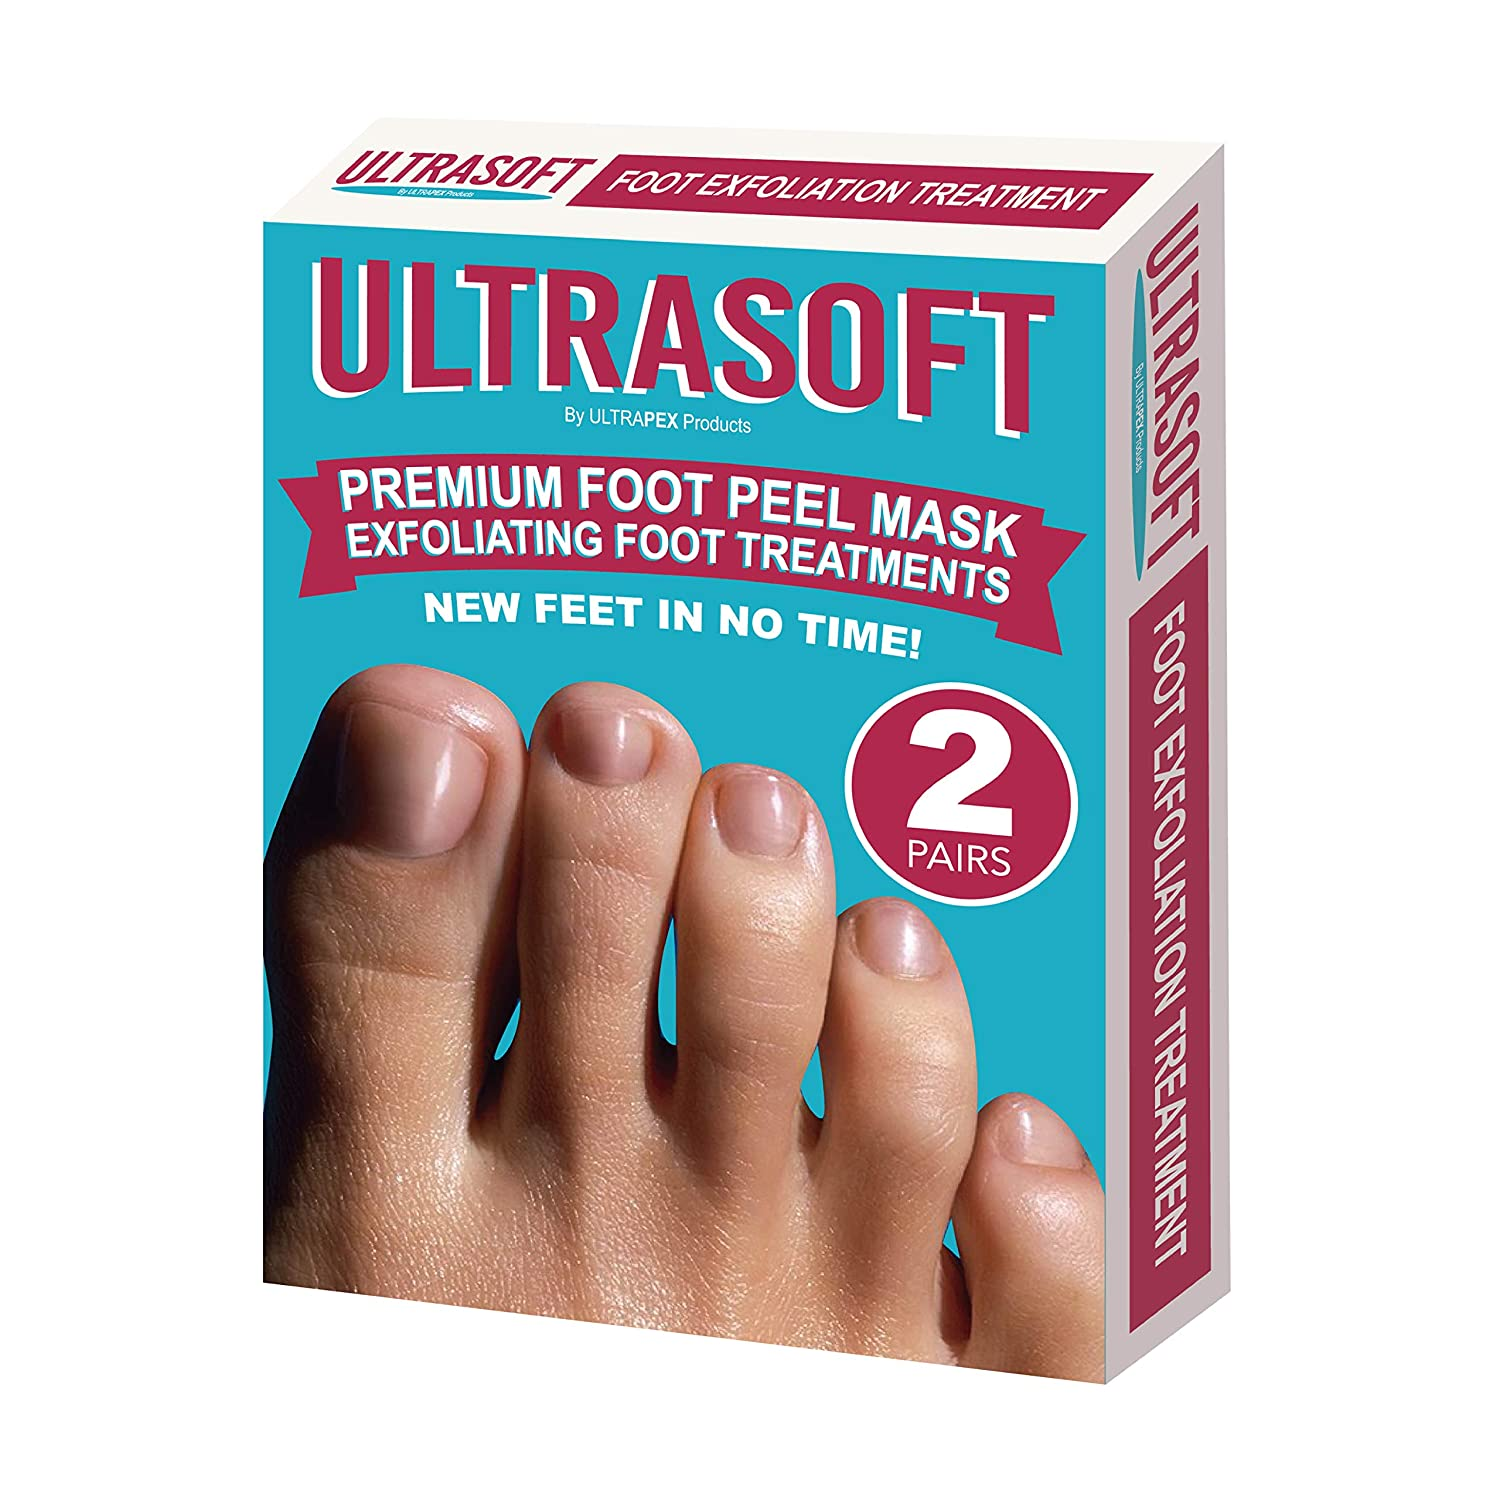 Foot Peel Mask by Ultrapex: 2-Pair Natural Exfoliating Foot Treatment Set for Men & Women - UltraSoft Dead Skin & Callus Remover Mask for Dry Skin & Rough Heels Treatment - Baby Soft Feet In 2 Weeks! Ultrapex Products